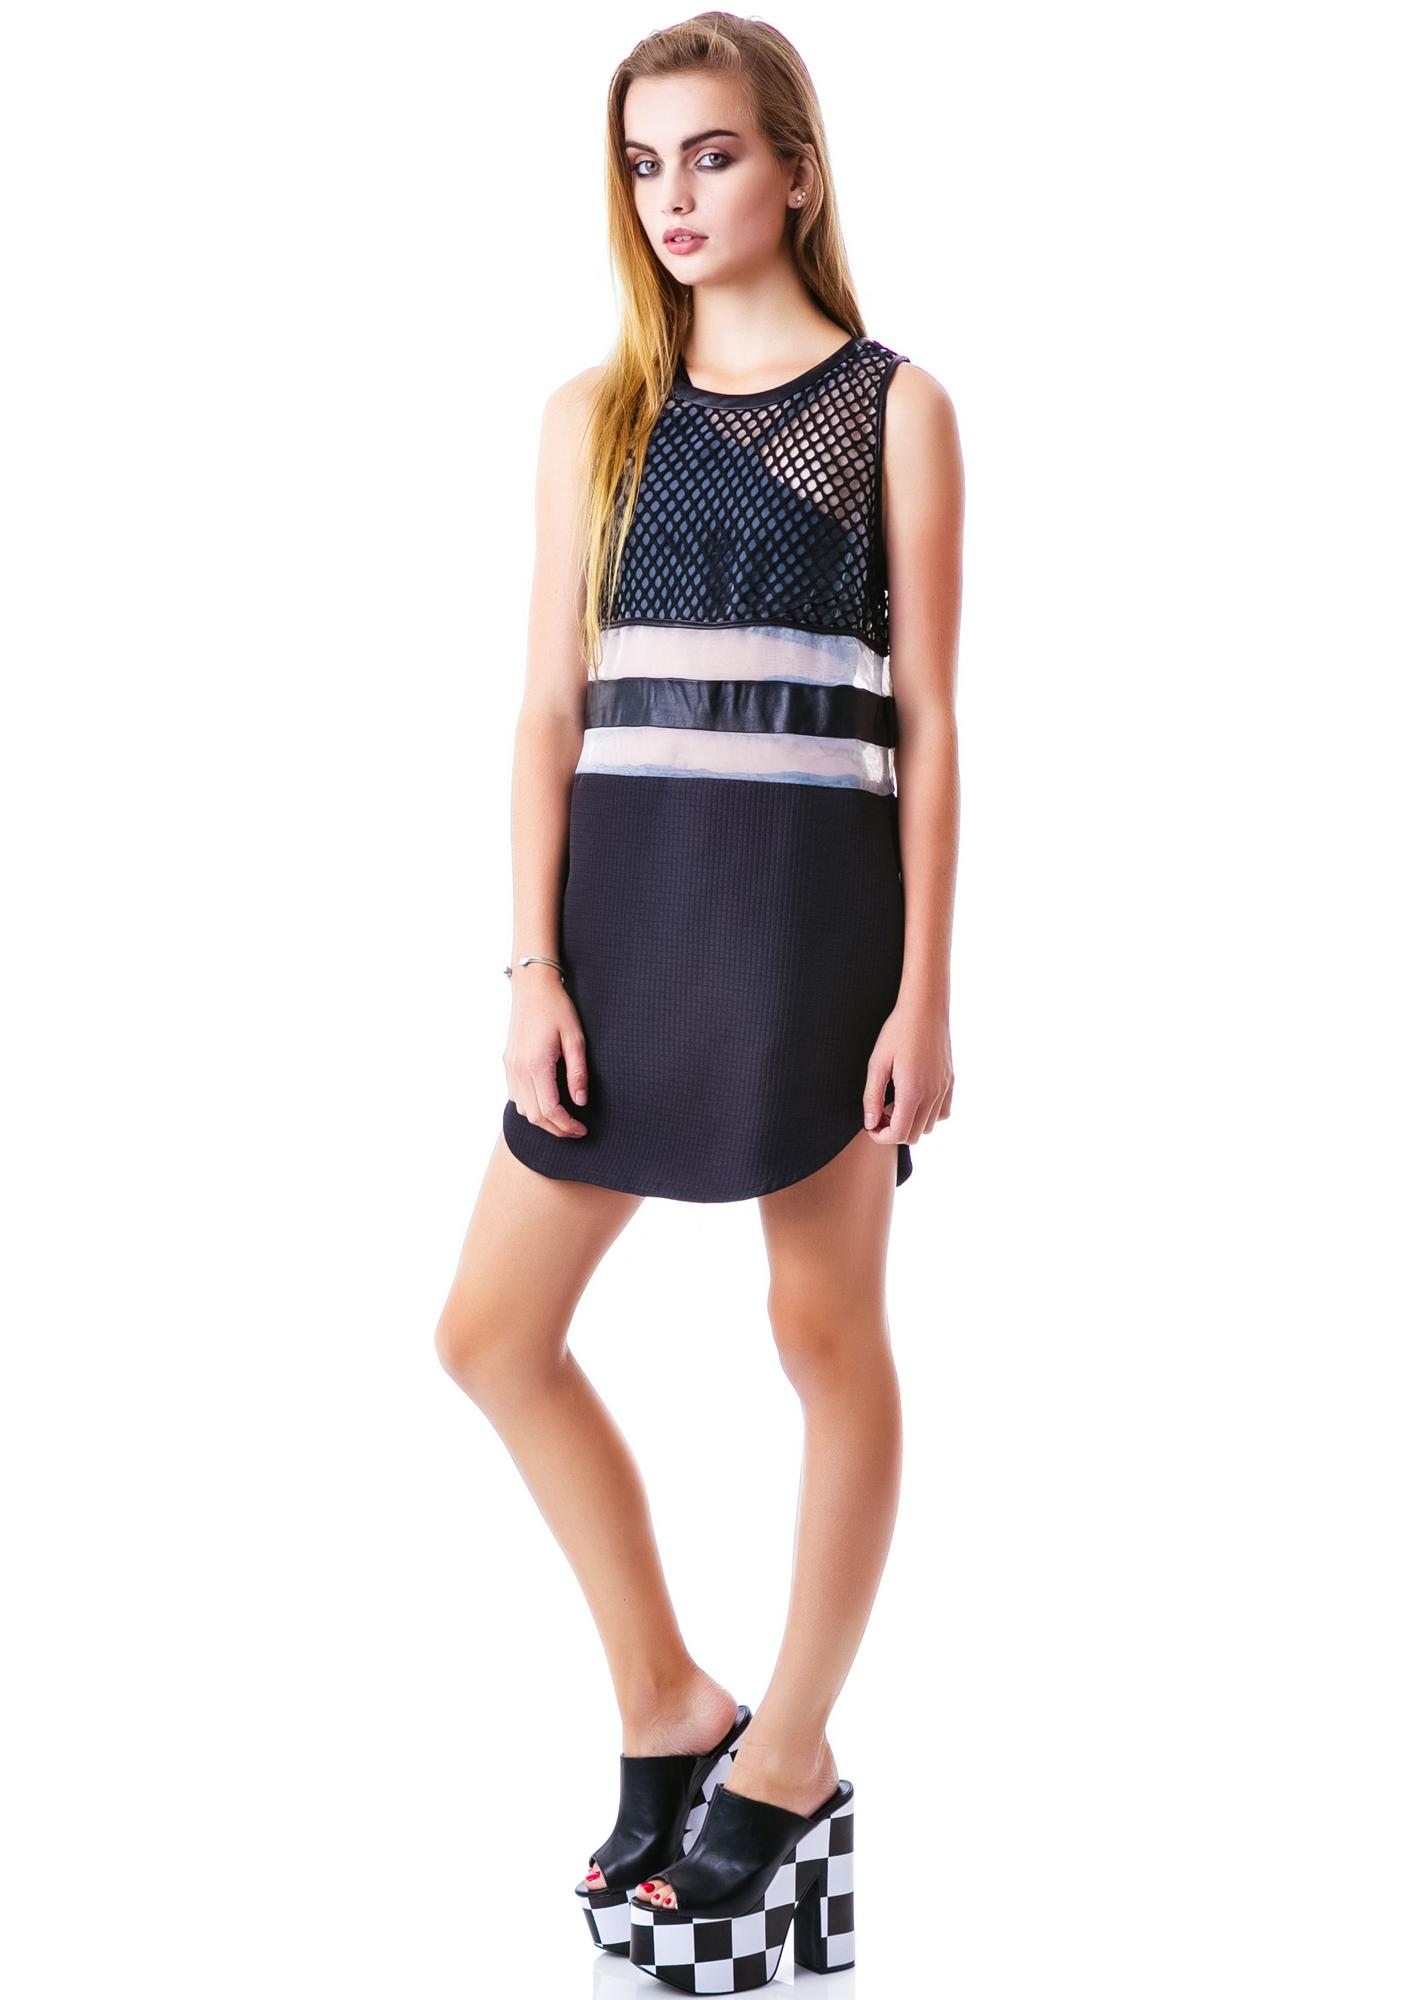 Meshed Up Thoughts Dress